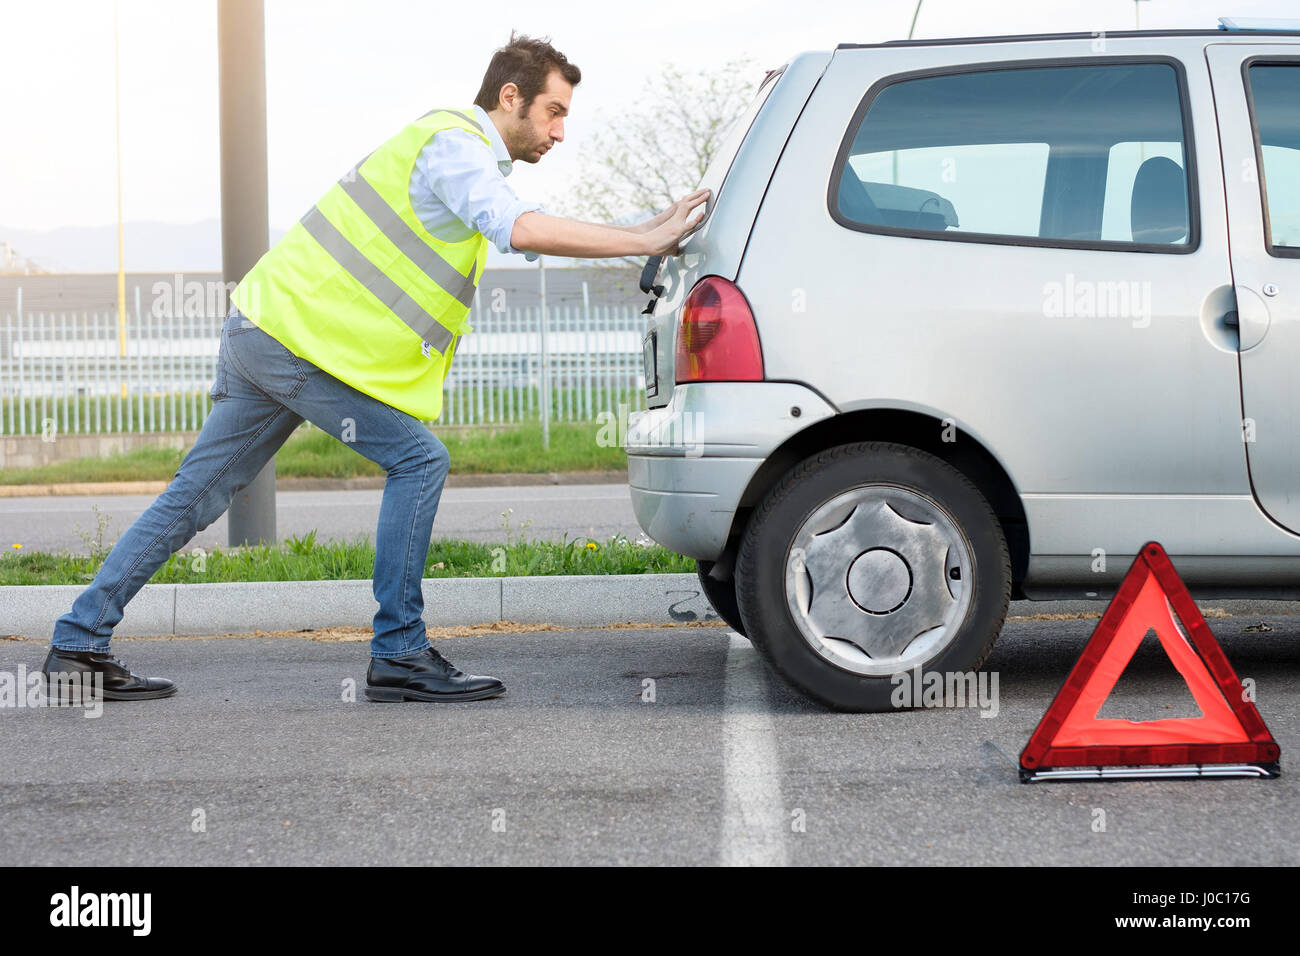 Stressed man pushing his car after engine breakdown - Stock Image